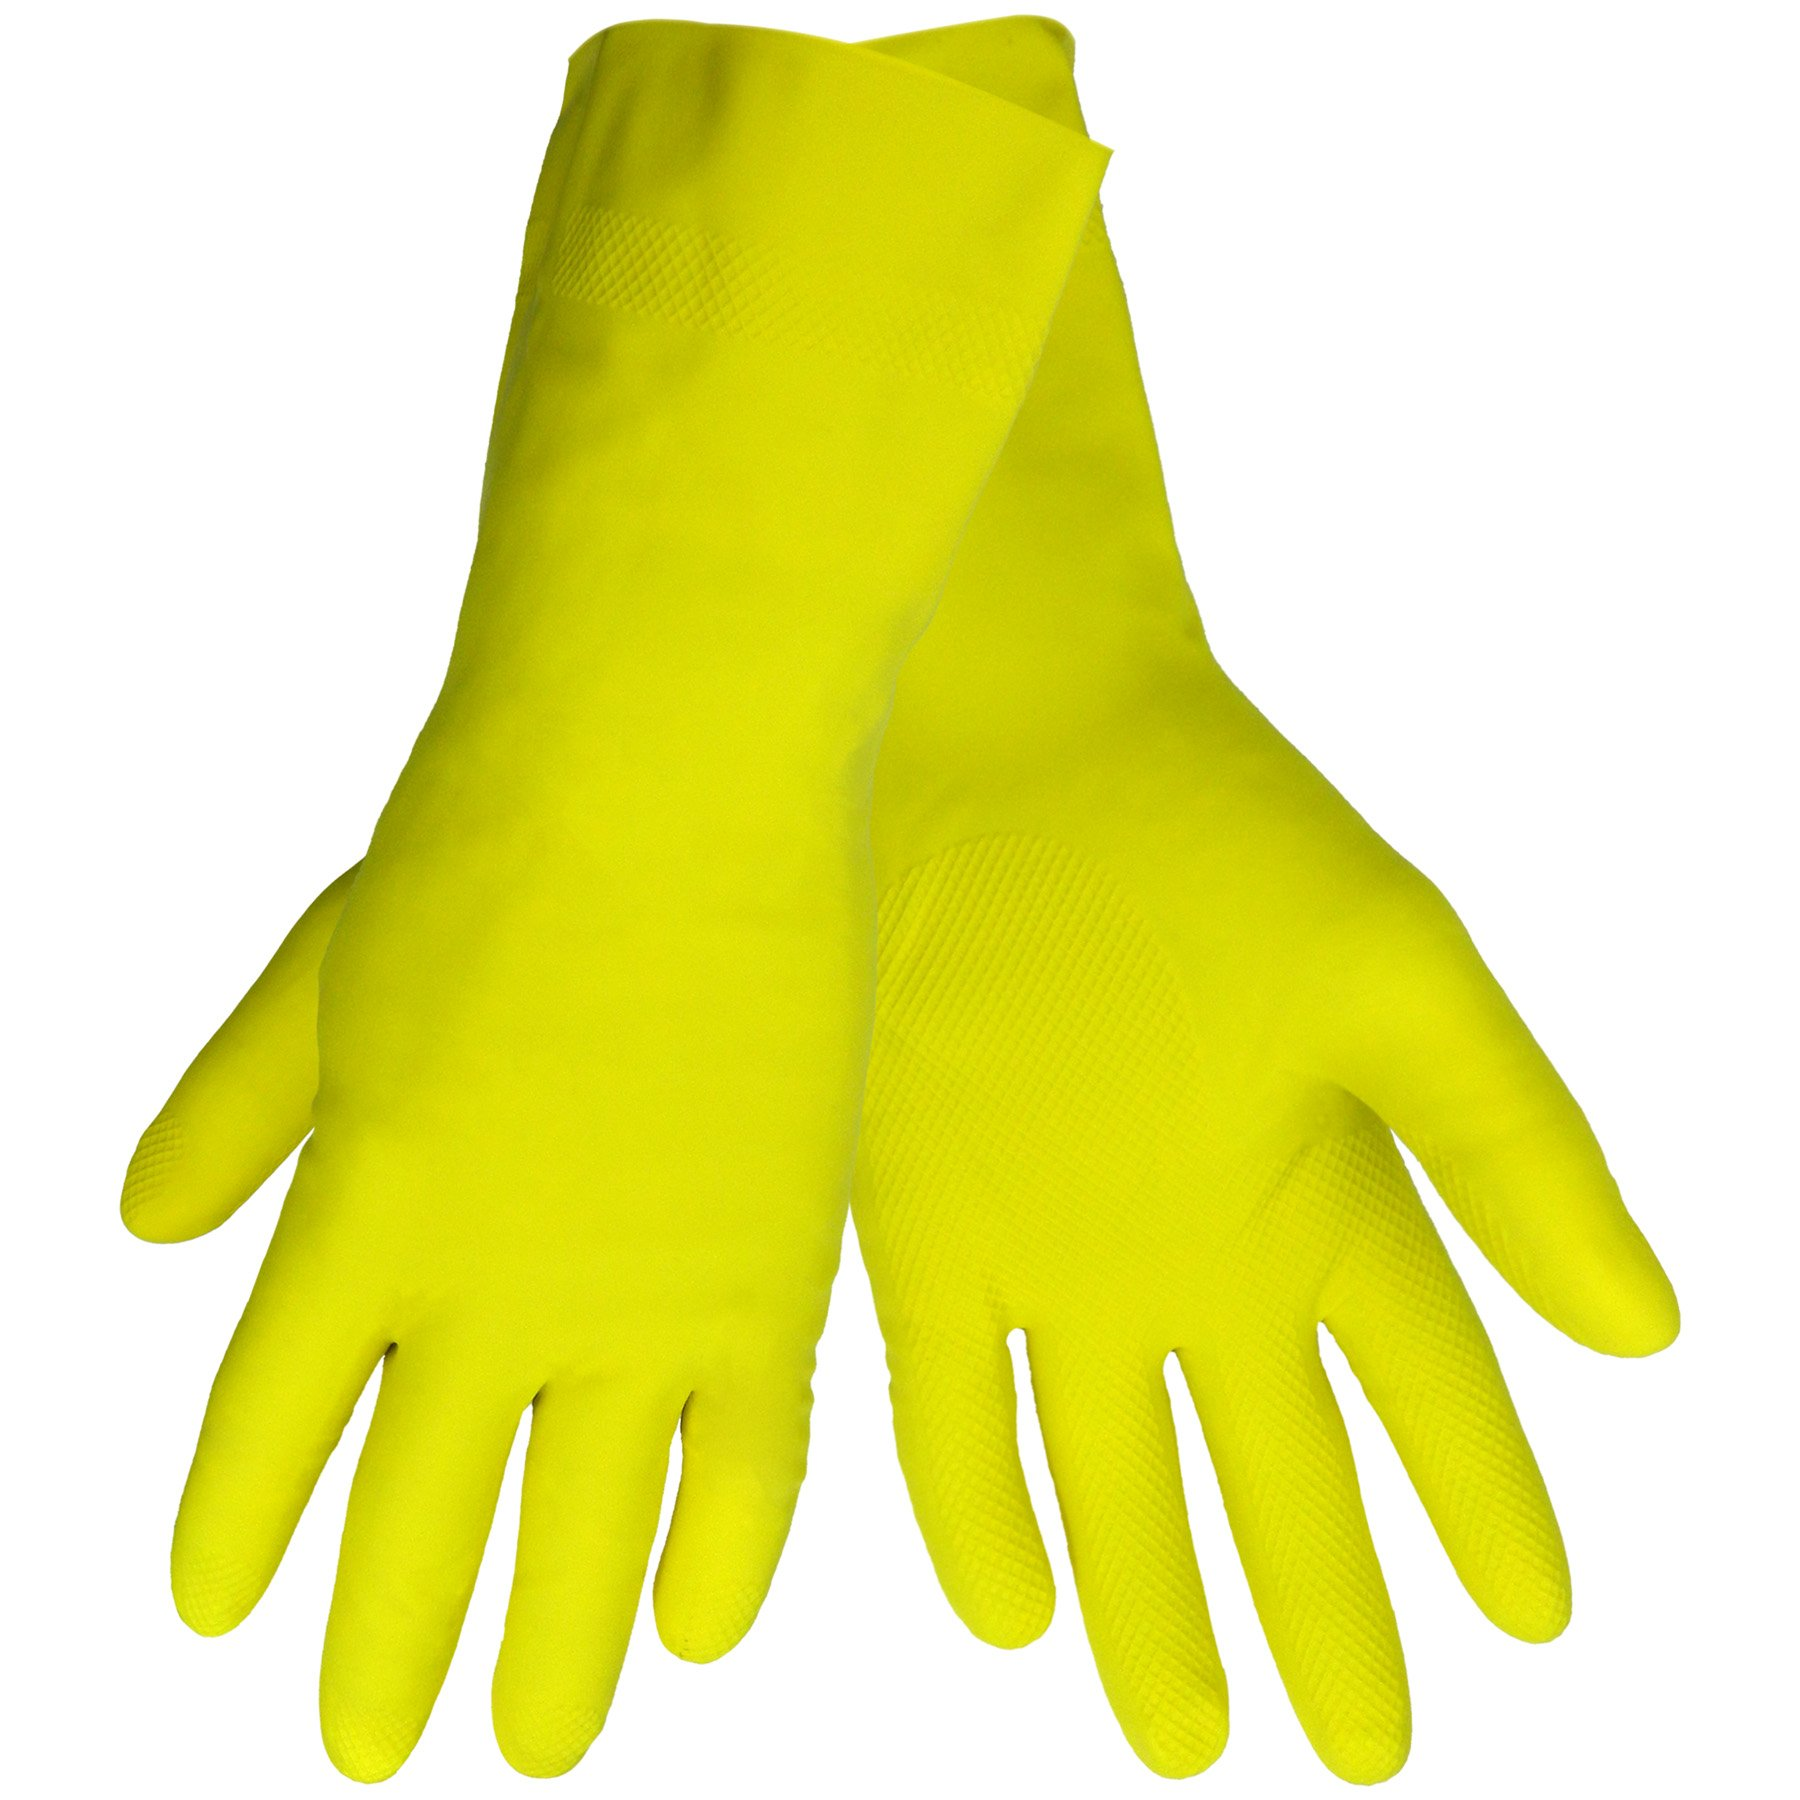 Global Glove 150FE Flock Lined Latex Economy Grade Glove, Chemical Resistant, Extra-Large, Yellow (Case of 144)